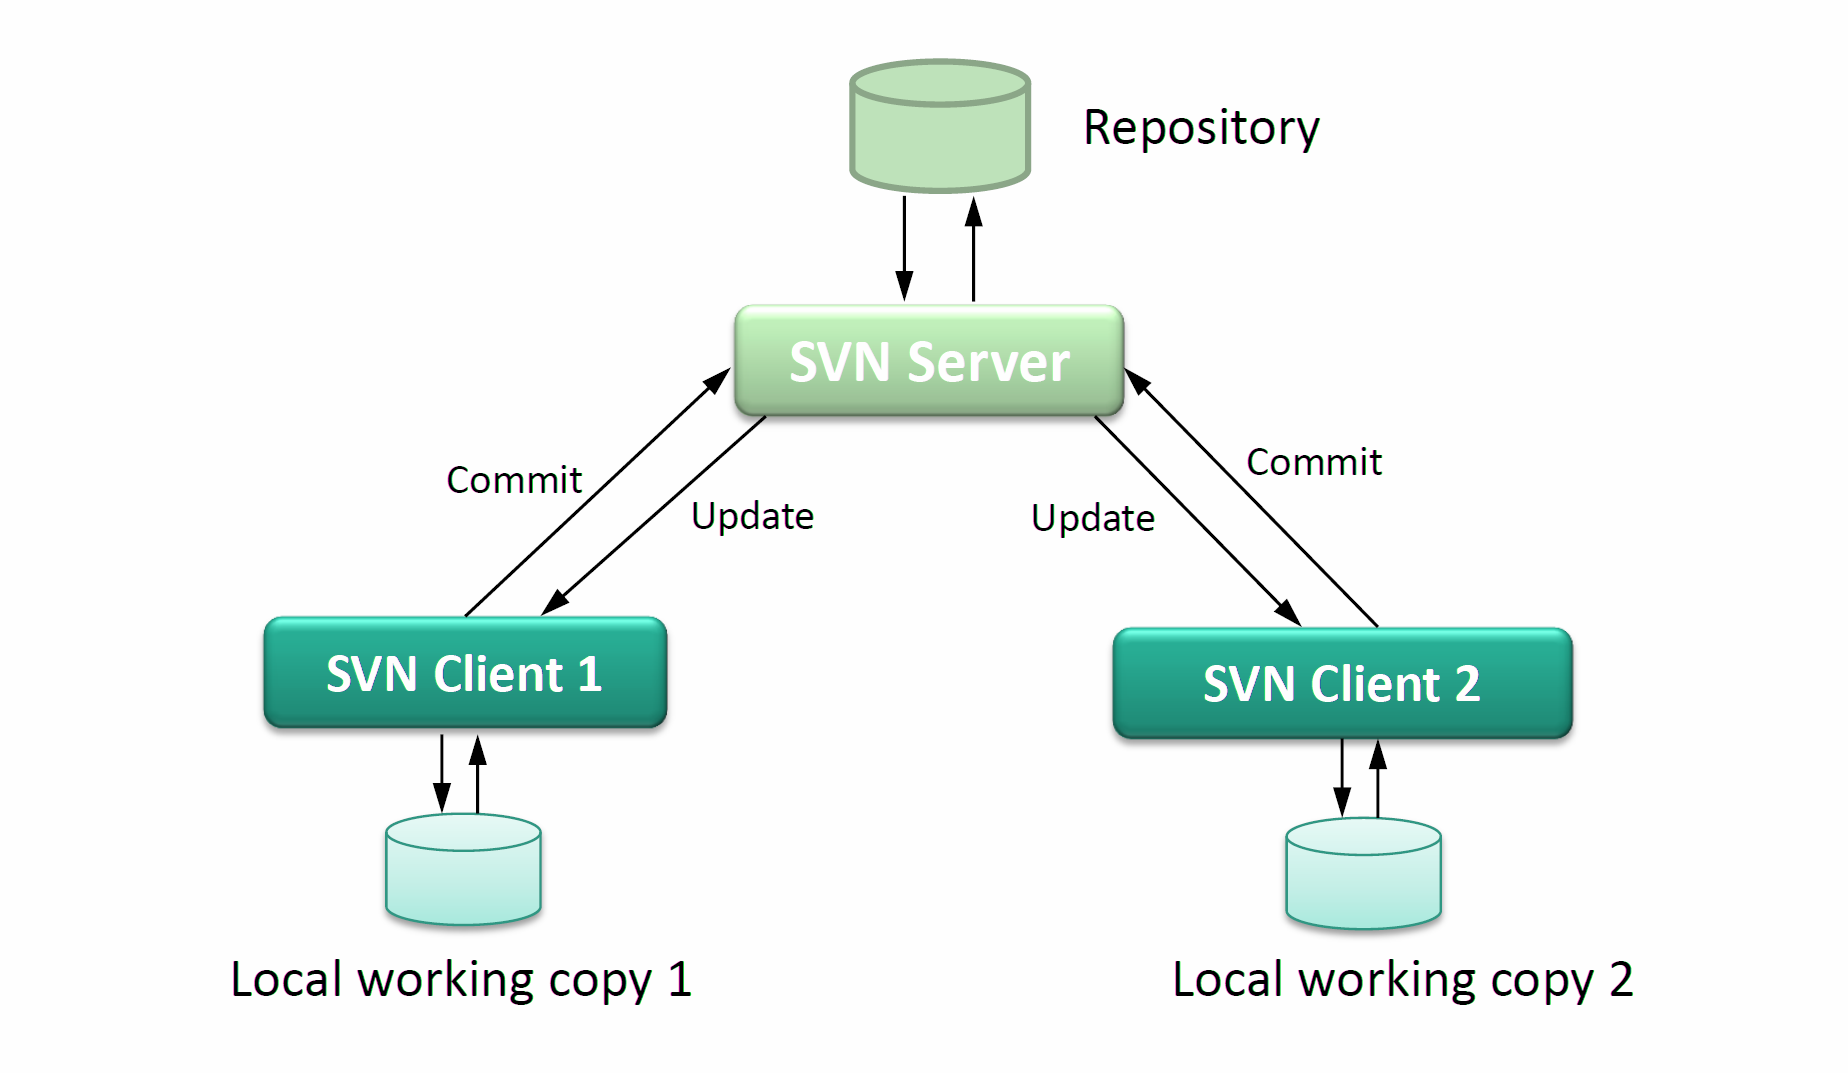 http://upload.wikimedia.org/wikipedia/commons/1/1a/SVN_Server_Client_Structure.png